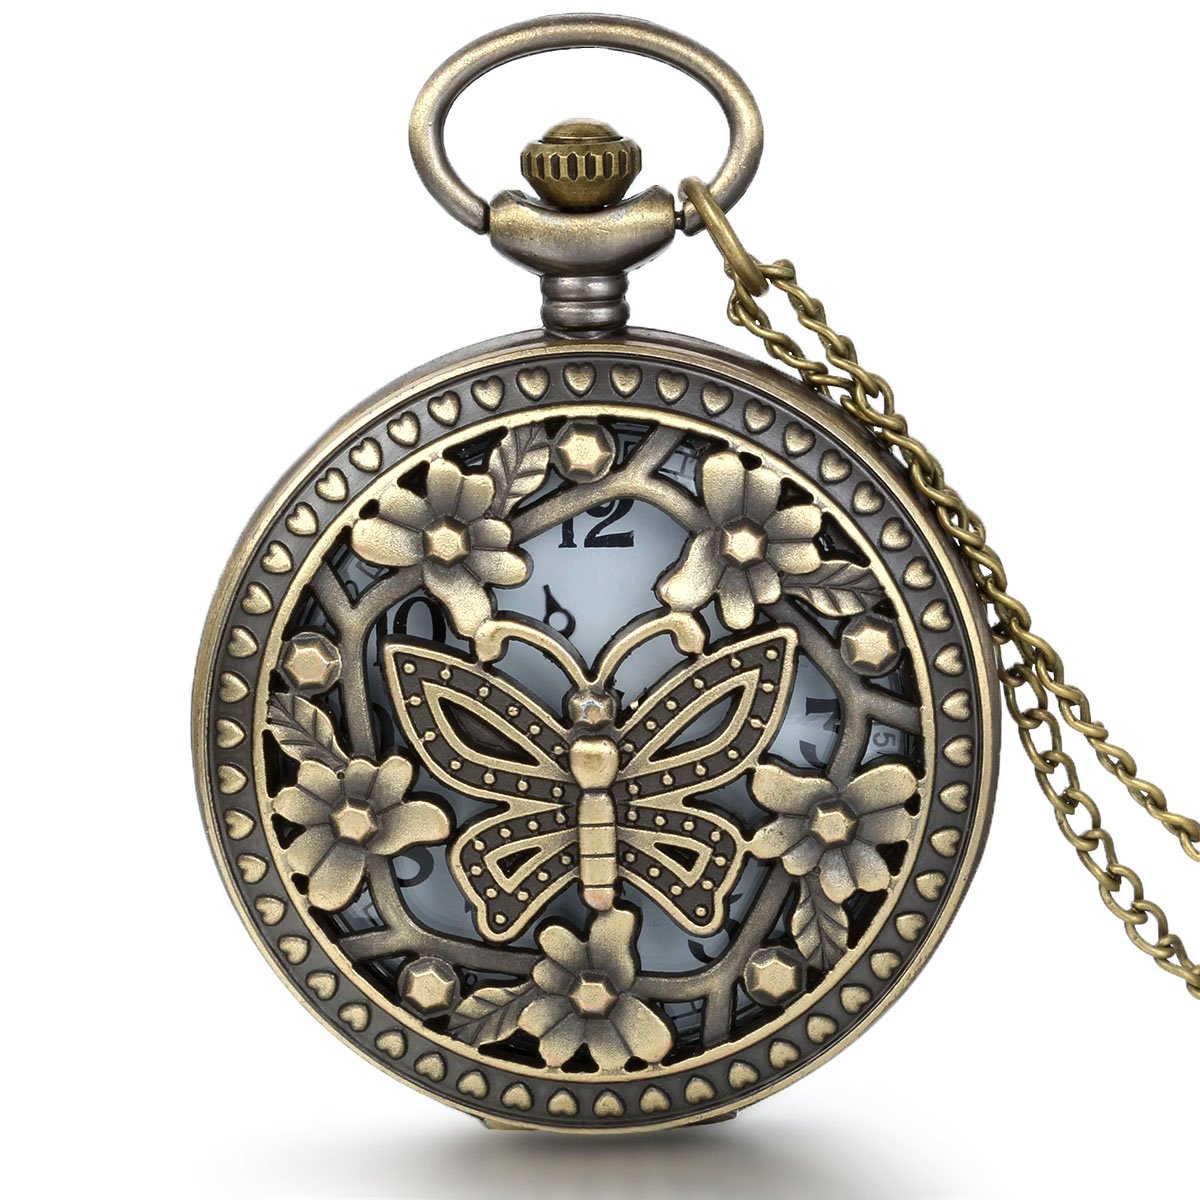 JewelryWe Retro Design Bronze Butterfly Flower Openwork Cover Pocket Quartz Watch with 31.5 Inch Chain by Jewelrywe (Image #1)